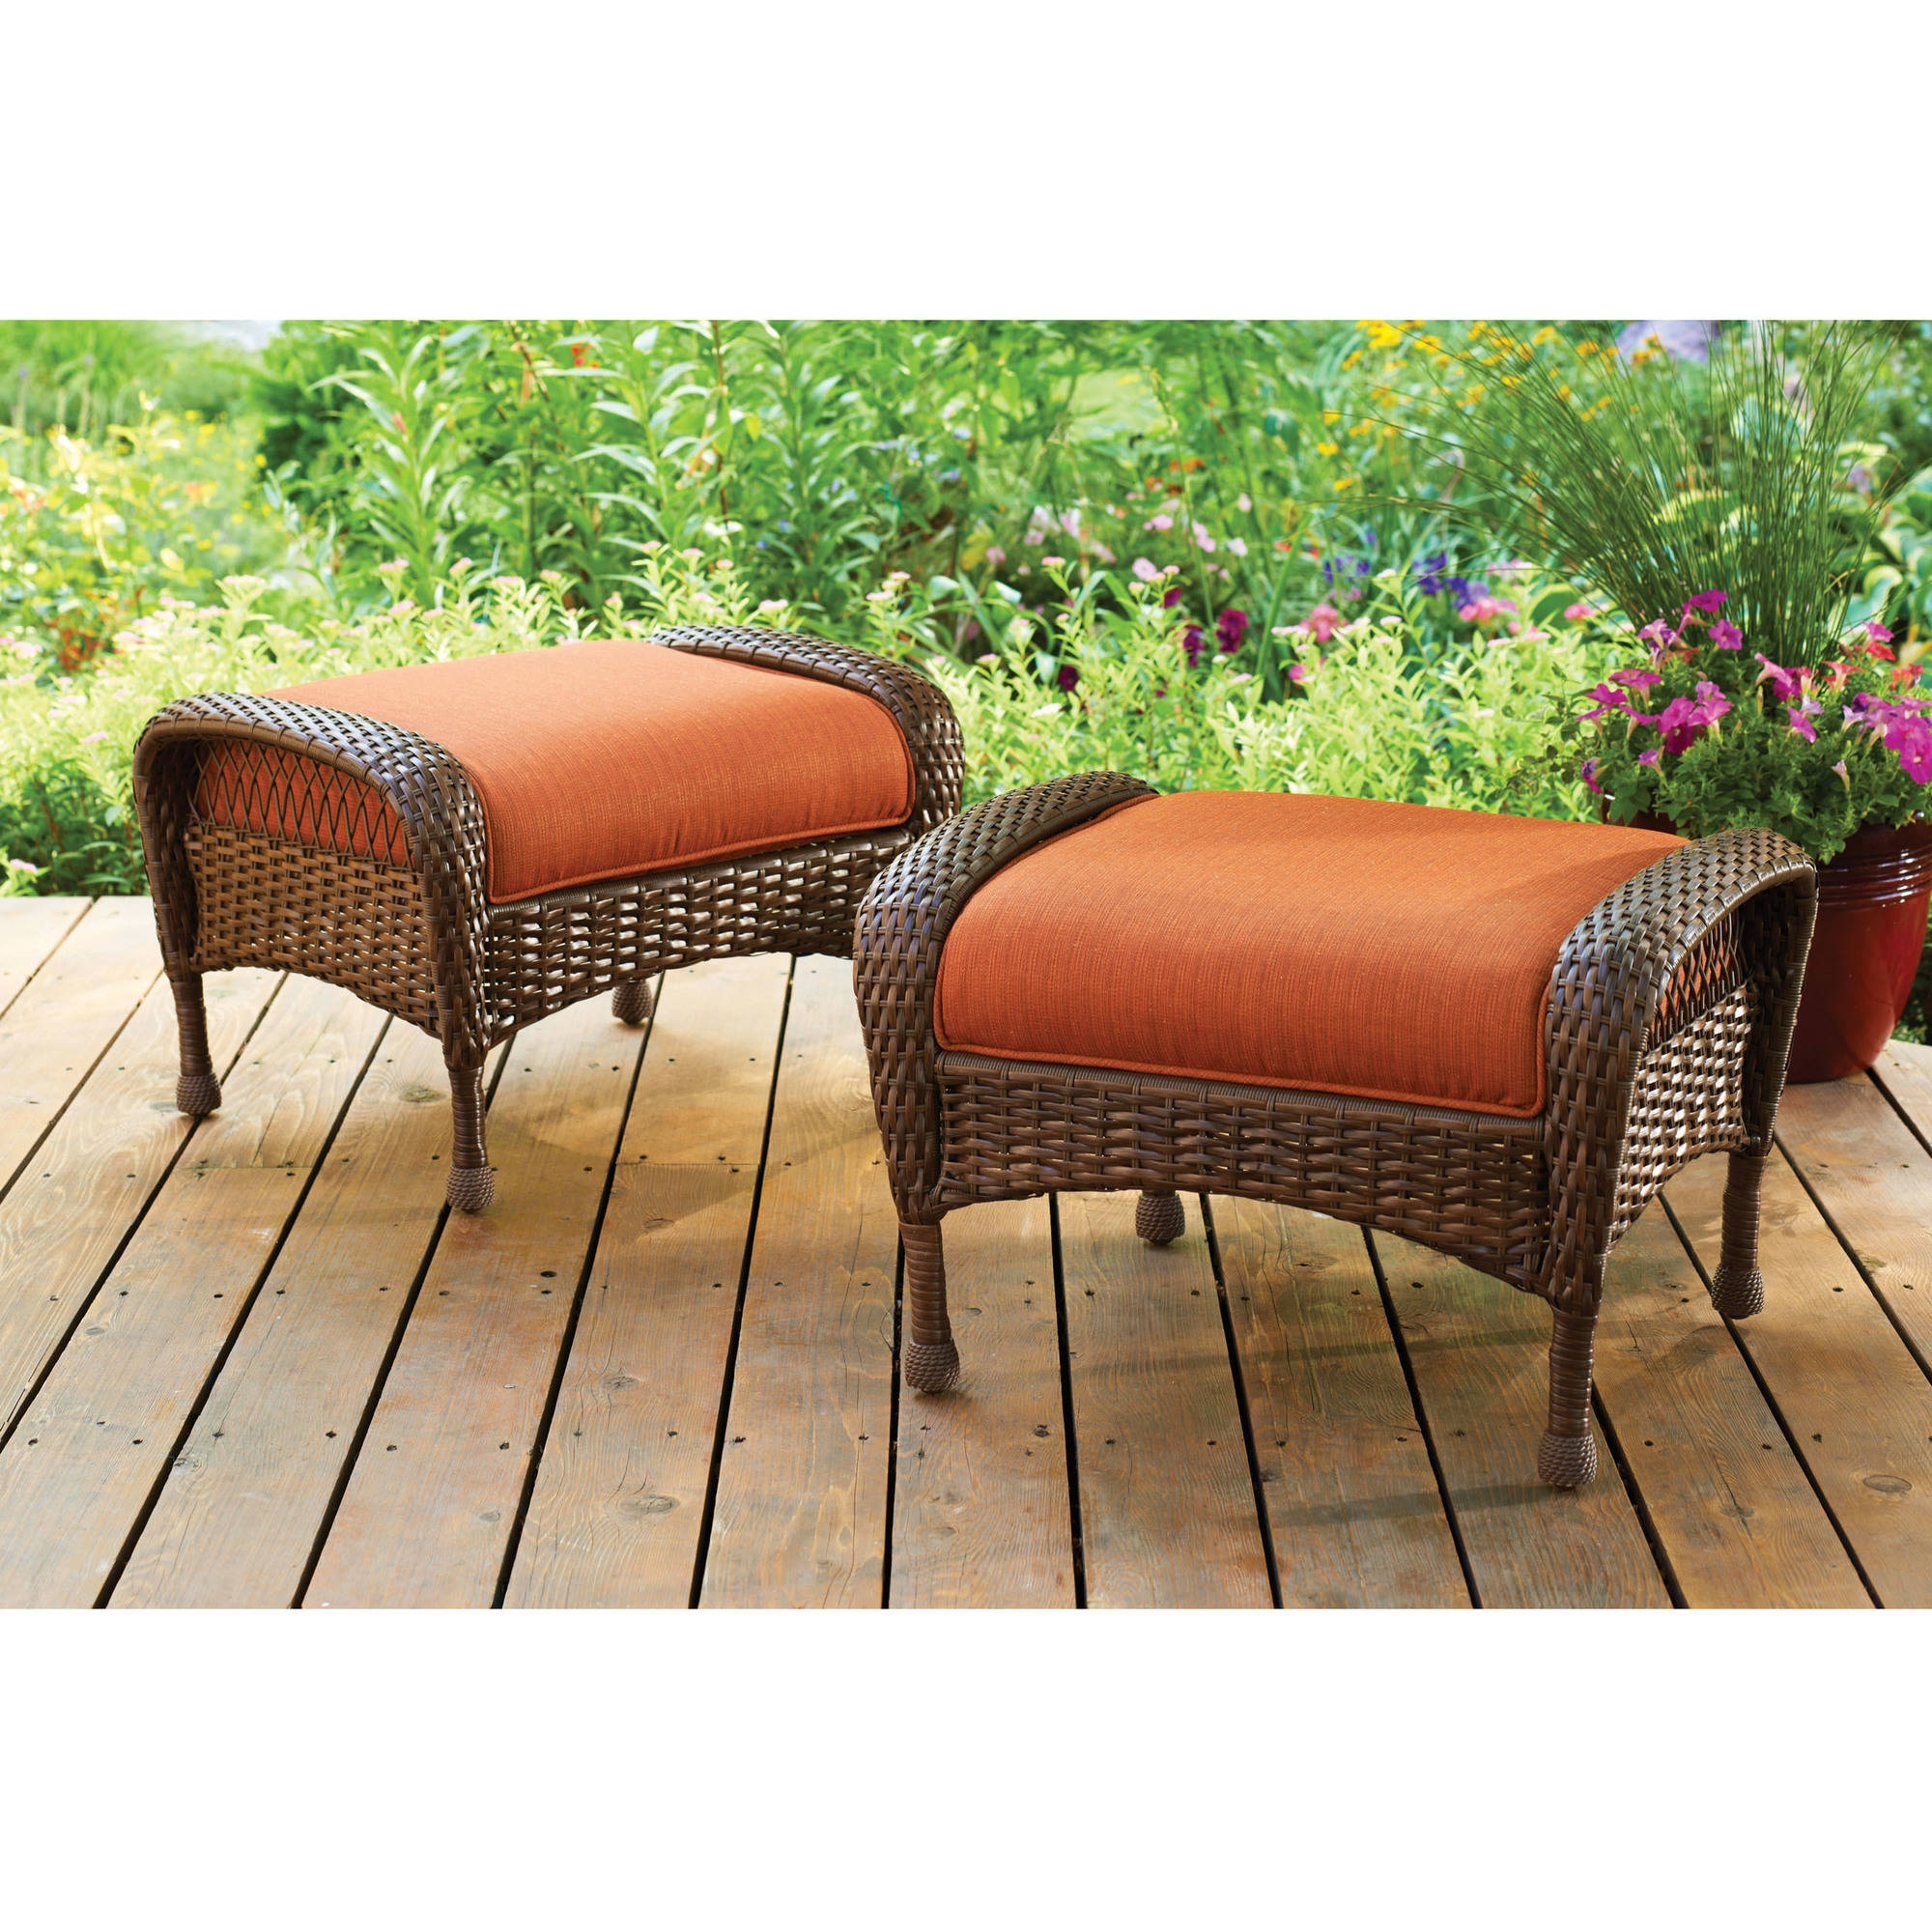 Patio Furniture Walmart With Regard To Outdoor Sofa Chairs (Image 13 of 15)